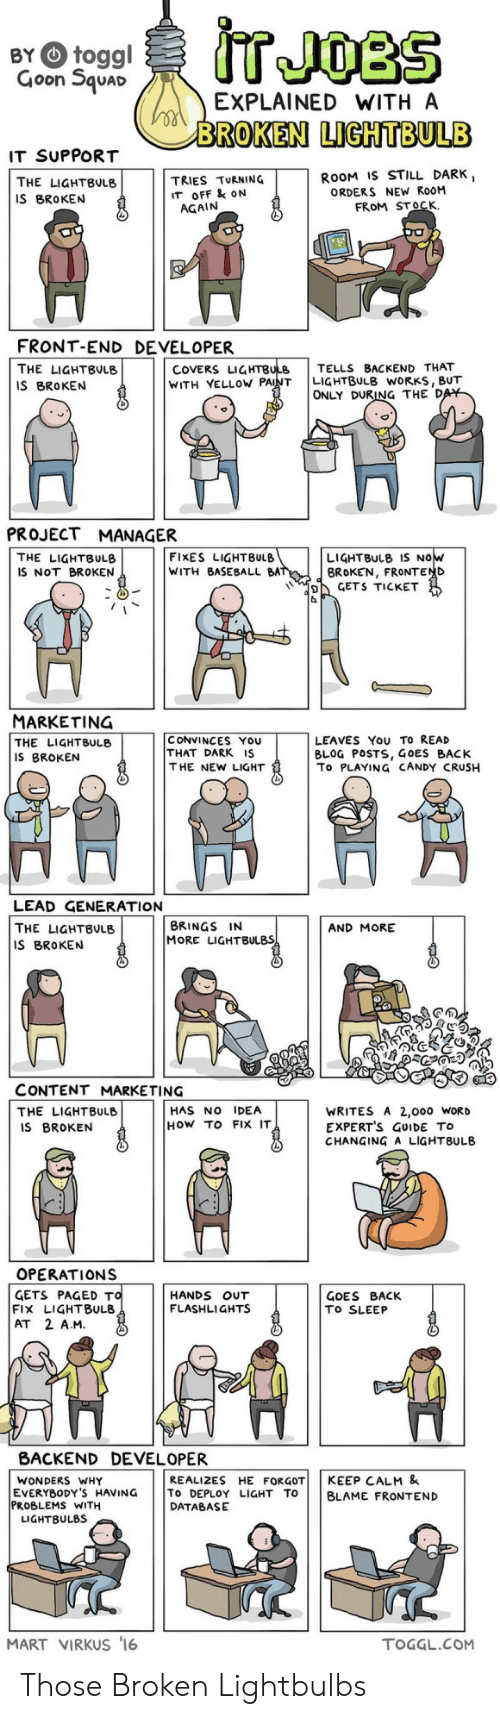 marketing: IT JOBS  BY toggl  Goon Squad  EXPLAINED WITH A  BROKEN LIGHTBULB  IT SUPPORT  ROOM IS STILL DARK,  ORDERS NEW ROOM  FROM STOCK  TRIES TURNING  IT OFF & oN  AGAIN  THE LIGHTBULB  IS BROKEN  FRONT-END DEVELOPER  COVERS LIGHTBULB  WITH VELLOW PAINT  TELLS BACKEND THAT  LIGHTBULB WORKS, BUT  ONLY DURING THE DAY  THE LIGHTBULB  IS BROKEN  PROJECT MANAGER  FIXES LIGHTBULB  WITH BASEBALL BAT  LIGHTBULB IS NOw  BROKEN, FRONTEND  CETS TICKET  THE LIGHTBULB  IS NOT BROKEN  MARKETING  CONVINCES YOU  THAT DARK IS  THE NEW LIGHT  LEAVES You TO READ  BLOG POSTS, GOES BACK  To PLAYING CANDY CRUSH  THE LIGHTBULB  IS BROKEN  LEAD GENERATION  BRINGS IN  MORE LIGHTBULBS  THE LIGHTBULB  AND MORE  IS BROKEN  CONTENT MARKETING  HAS NO IDEA  THE LIGHTBULB  IS BROKEN  WRITES A 2,ooo WORD  EXPERT'S GUIDE TO  CHANGING A LIGHTBULB  HOw TO FIx IT  OPERATIONS  GETS PAGED TO  FIx LIGHTBULB  AT 2 A.M.  HANDS OUT  FLASHLIGHTS  GOES BACK  TO SLEEP  BACKEND DEVELOPER  REALIZES HE FORGOT  To DEPLOY LIGHT TO  DATABASE  KEEP CALM &  WONDERS WHY  EVERYBODY'S HAVING  PROBLEMS WITH  LIGHTBULBS  BLAME FRONTEND  MART VIRKUS '16  TOGGL.COM Those Broken Lightbulbs